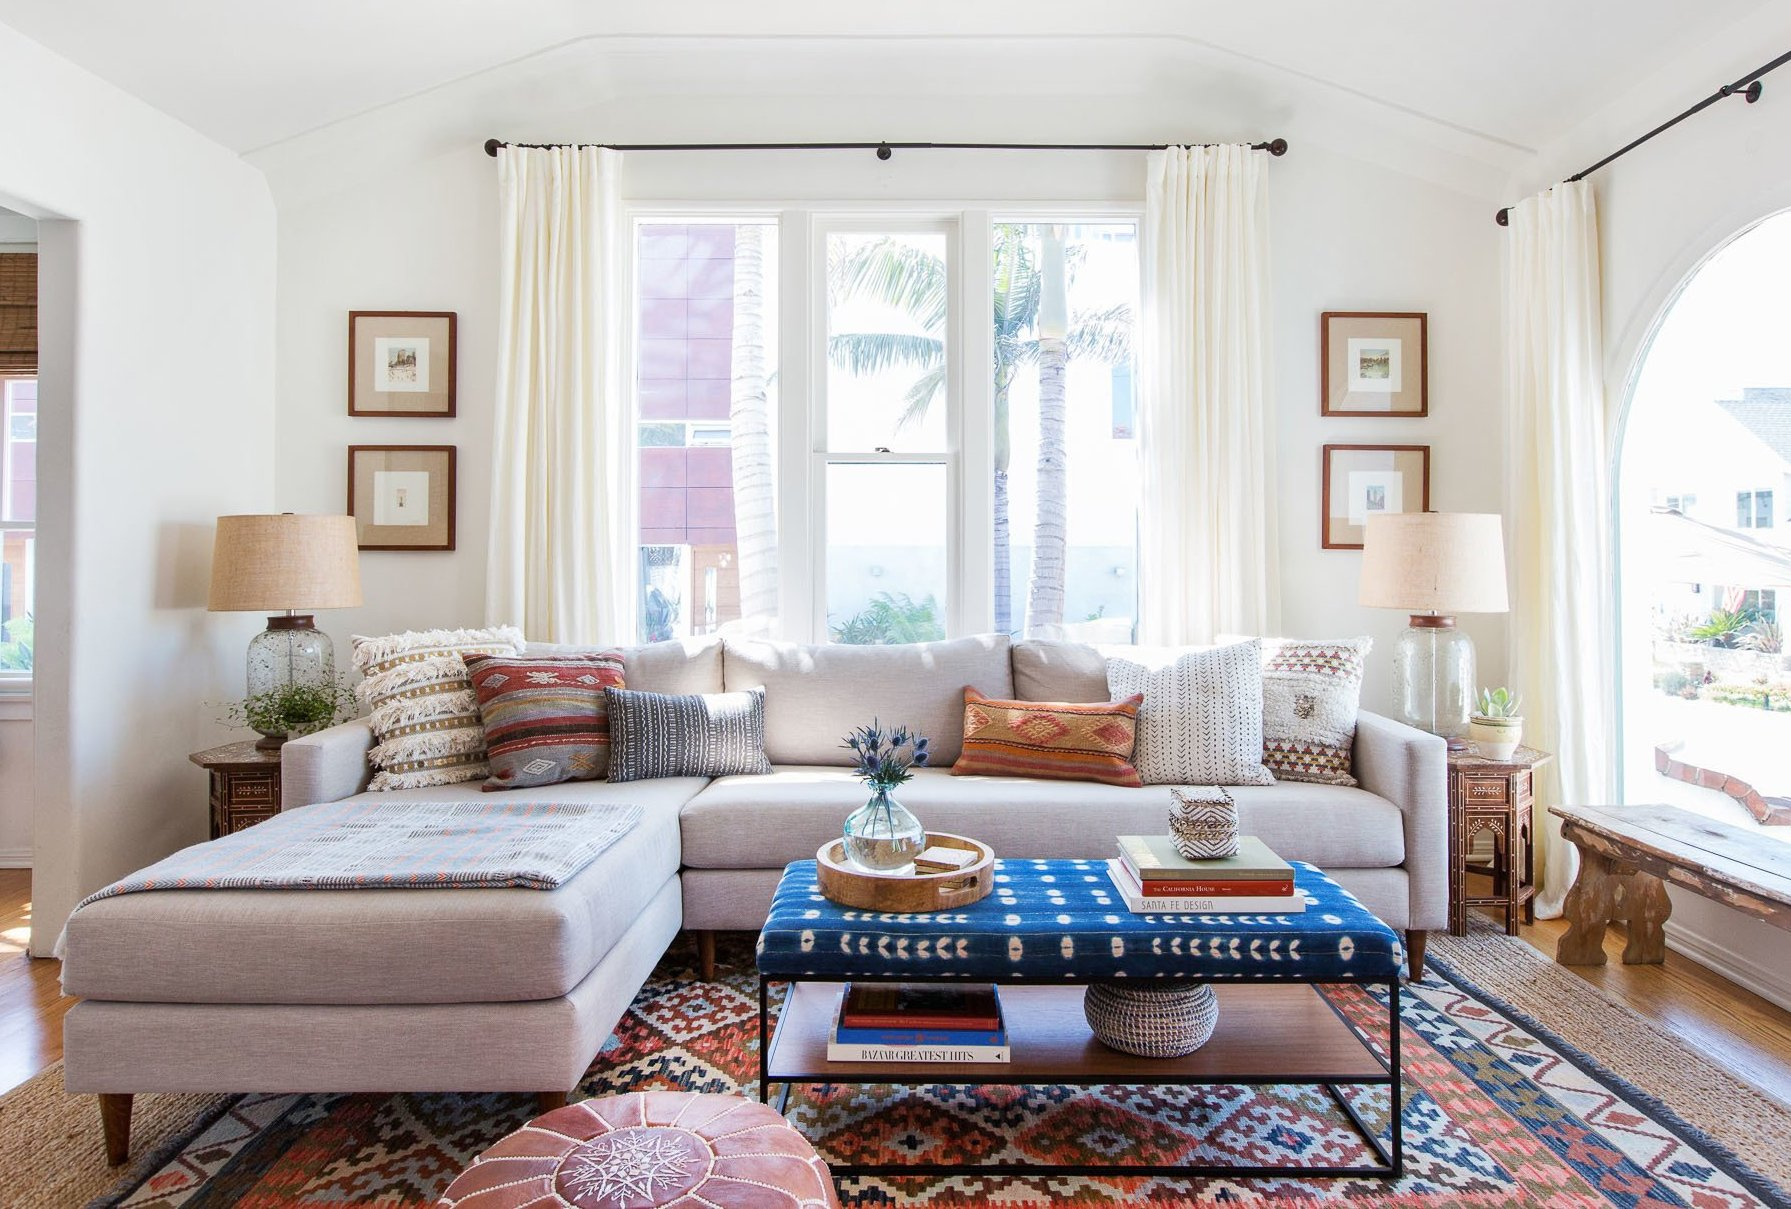 Layered-Rugs-Mid-Century-Sofa-Modern-Eclectic-Living-Room.jpg